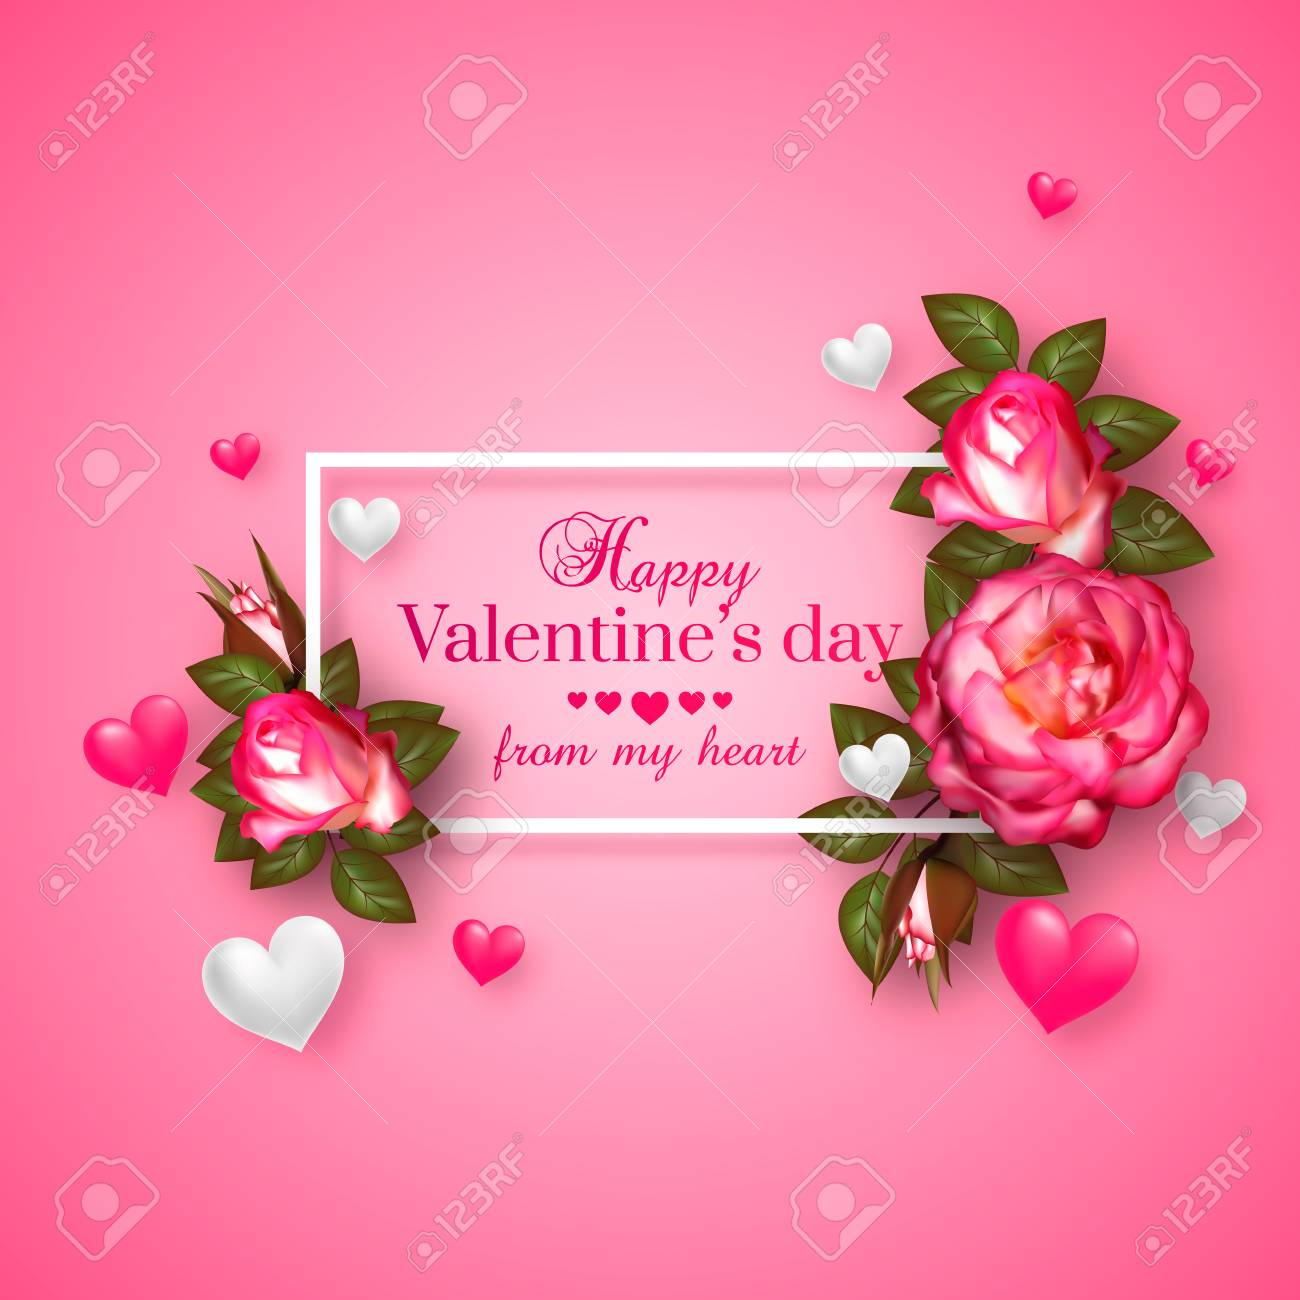 photo stock vector realistic 3d floral valentines day card with floating hearts and roses happy valentines day greeting